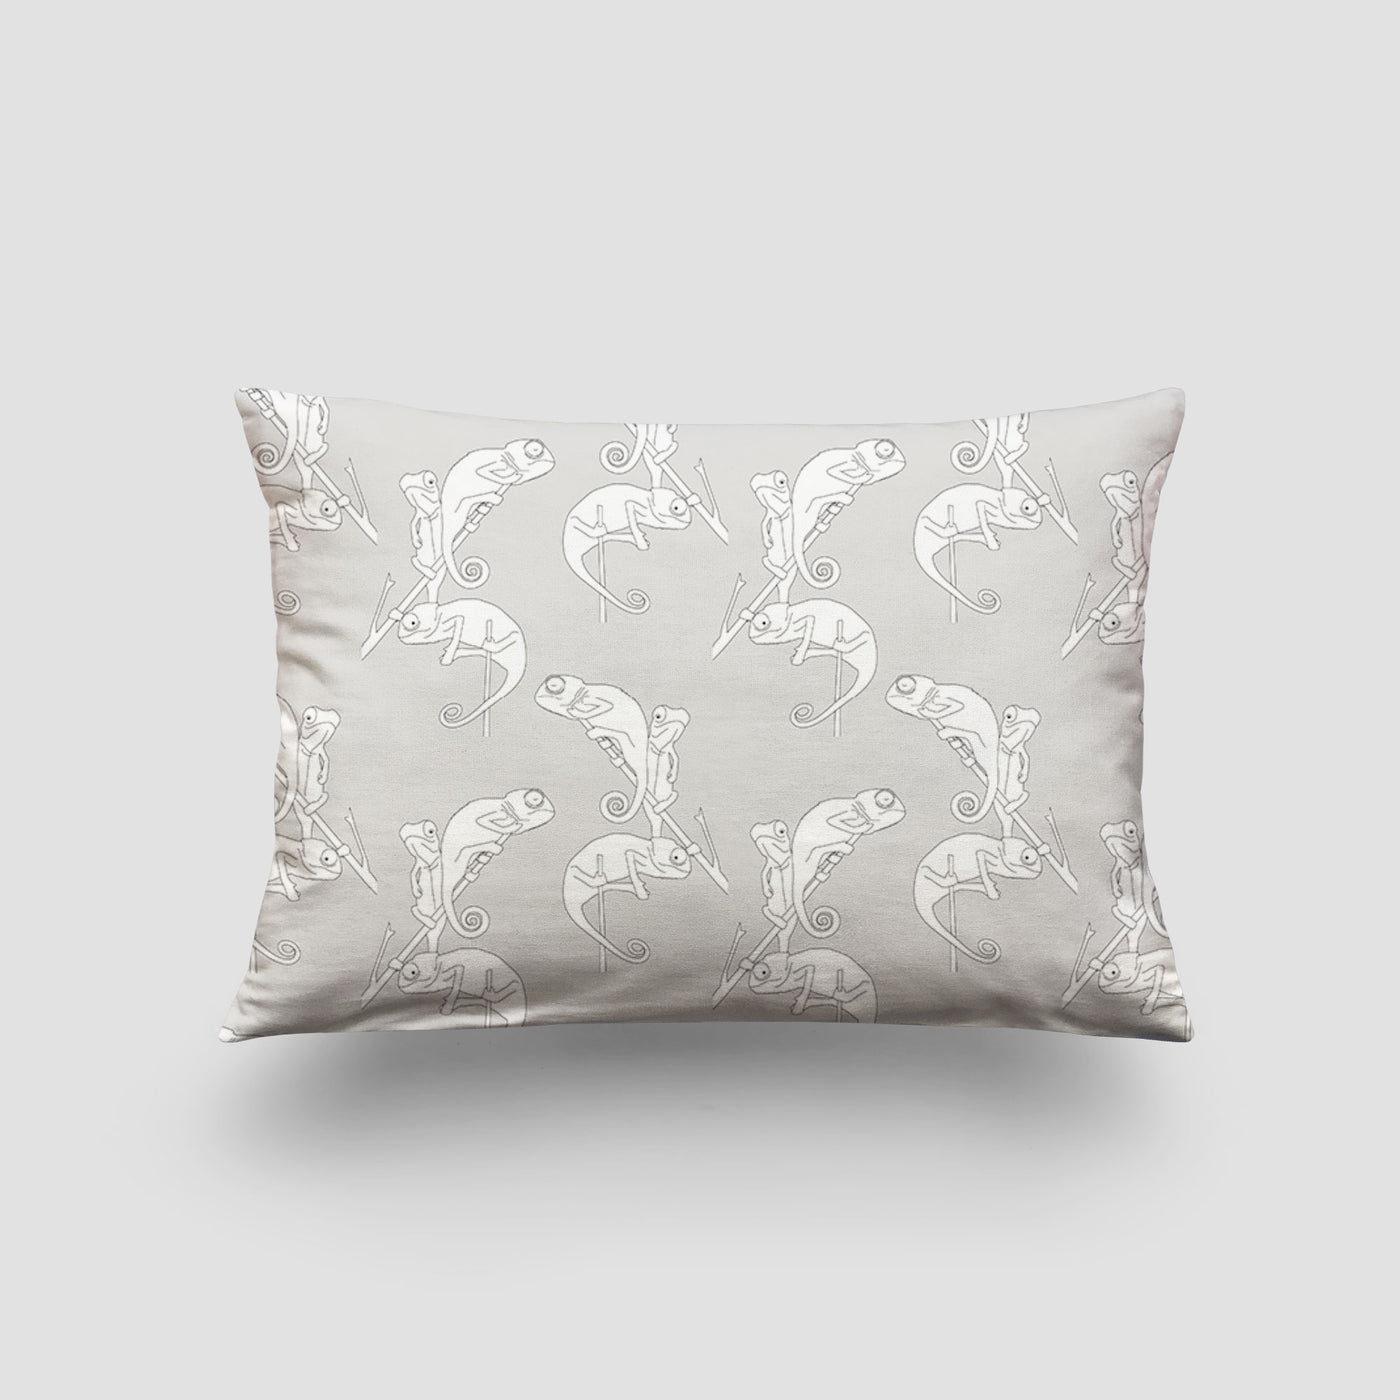 small cushion chameleon camo grey